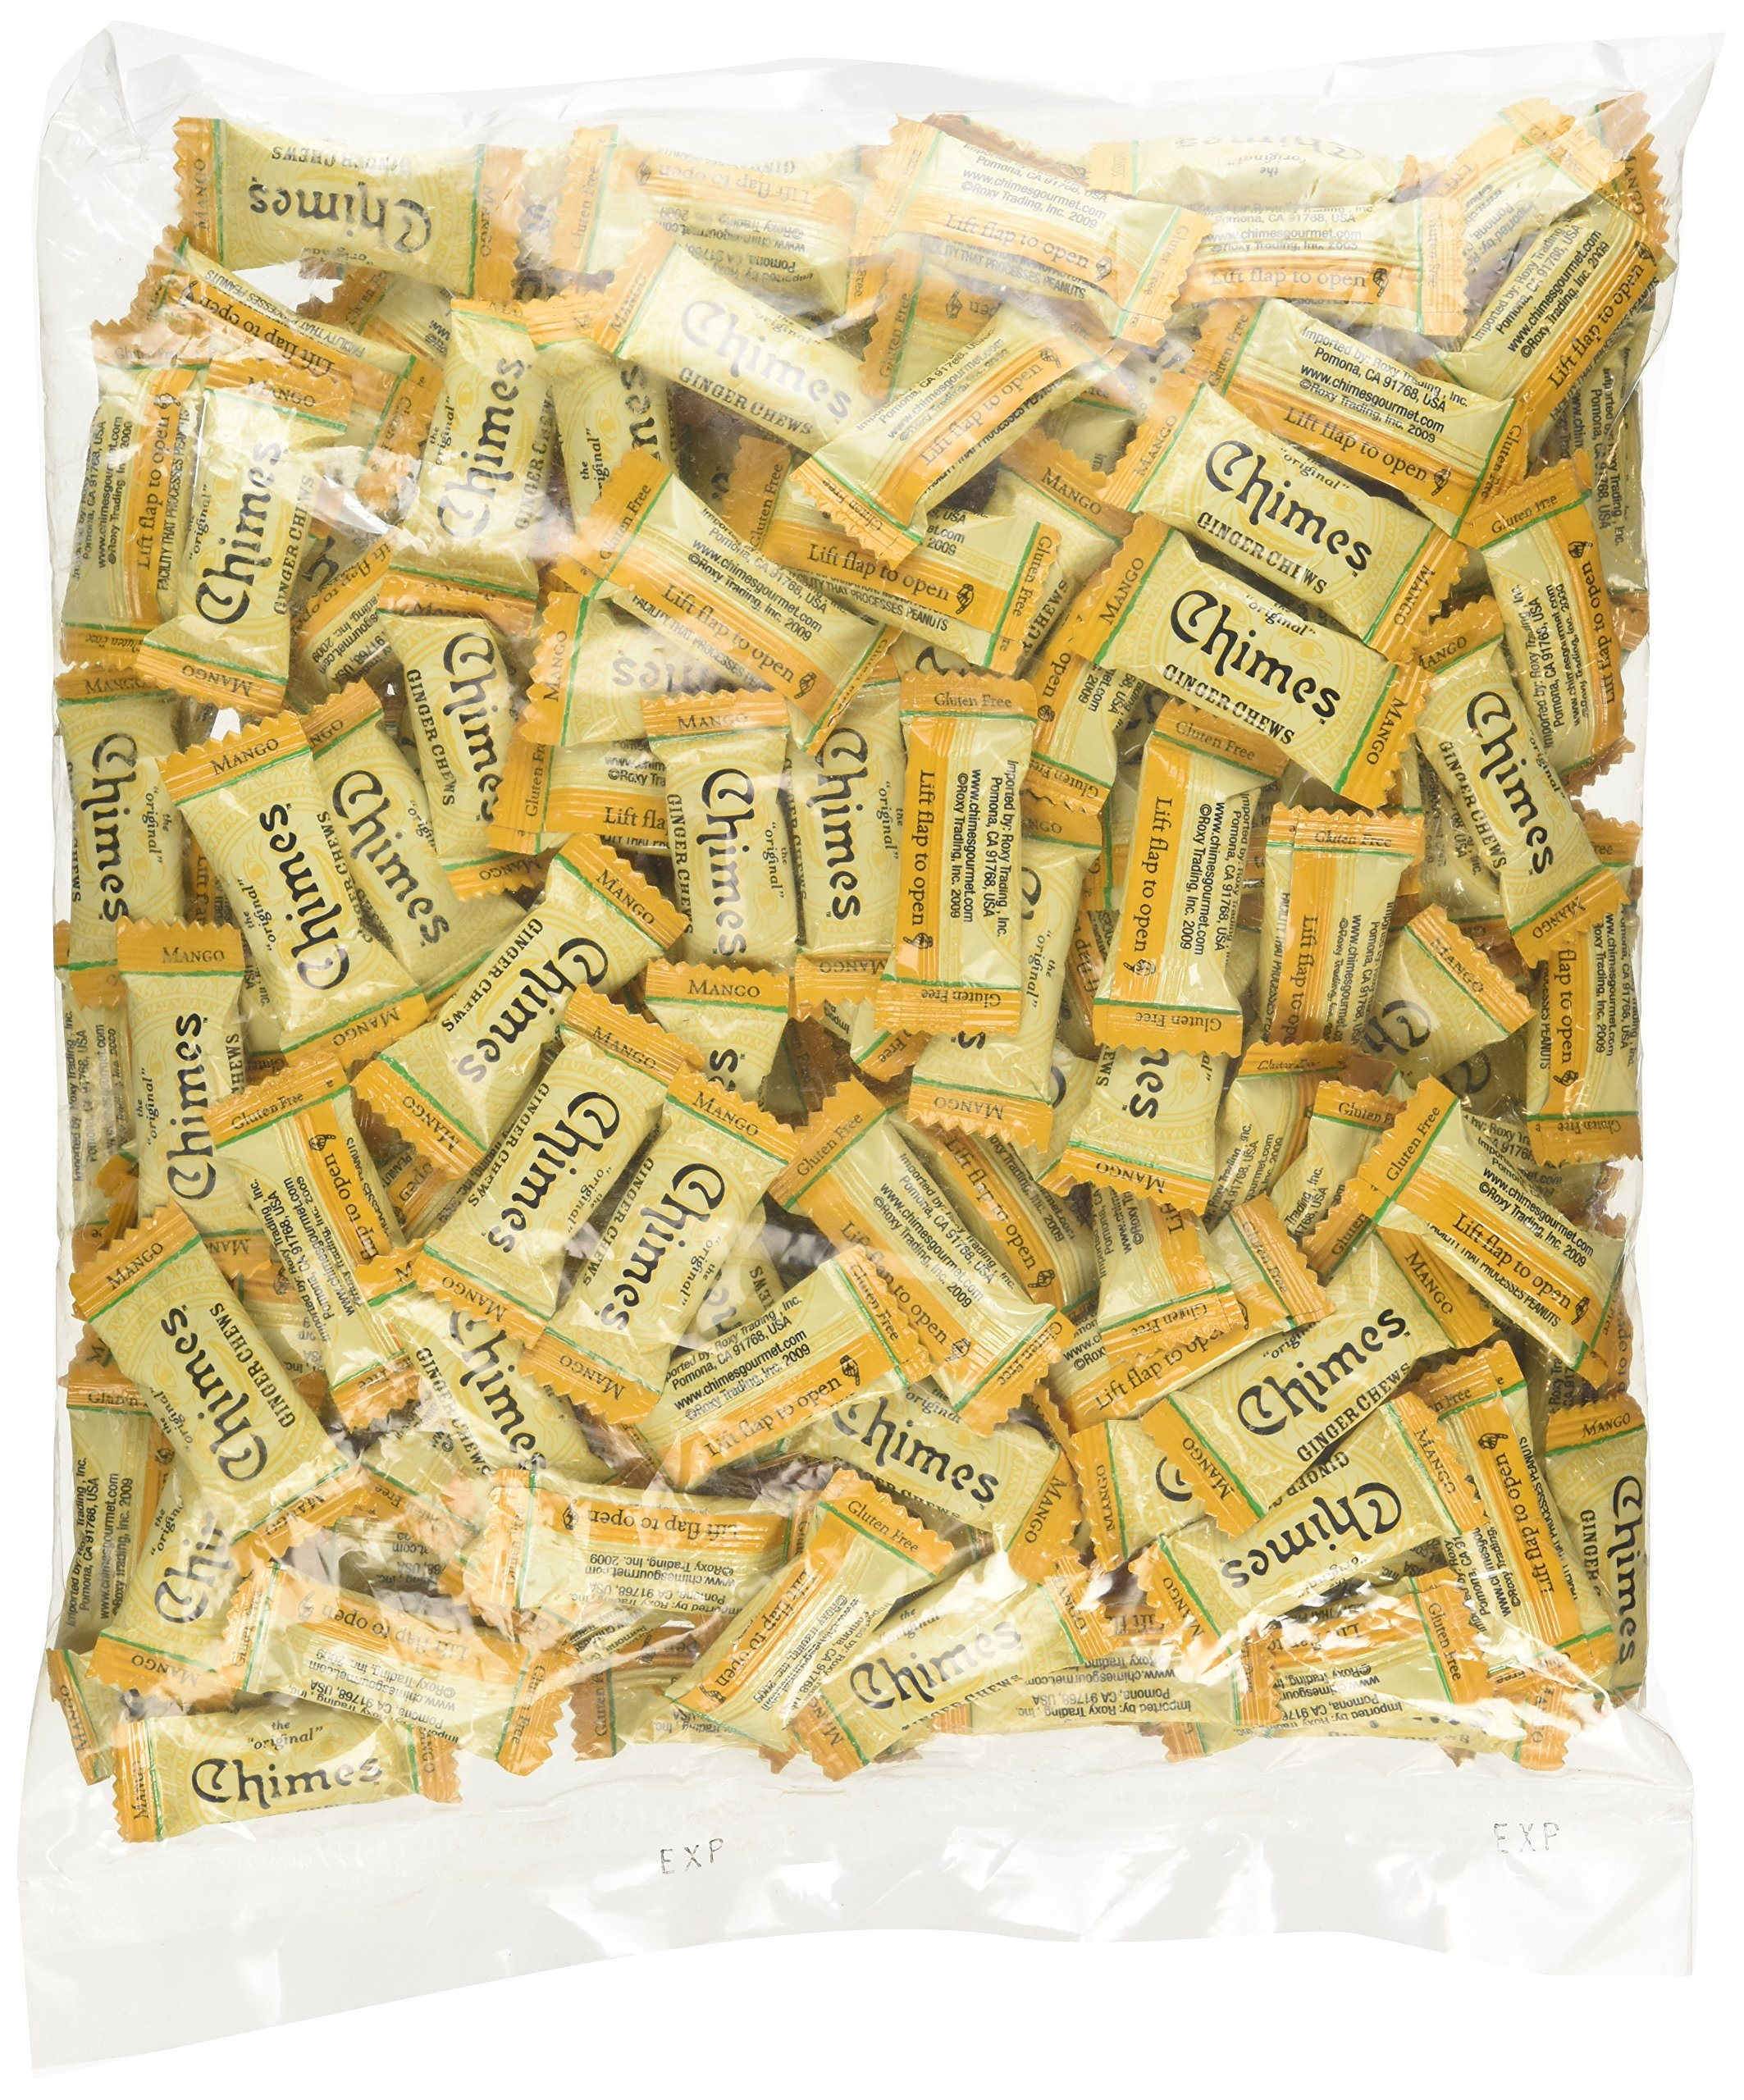 Chimes Mango Ginger Chews, 2-pound Bag by Chimes (Image #3)